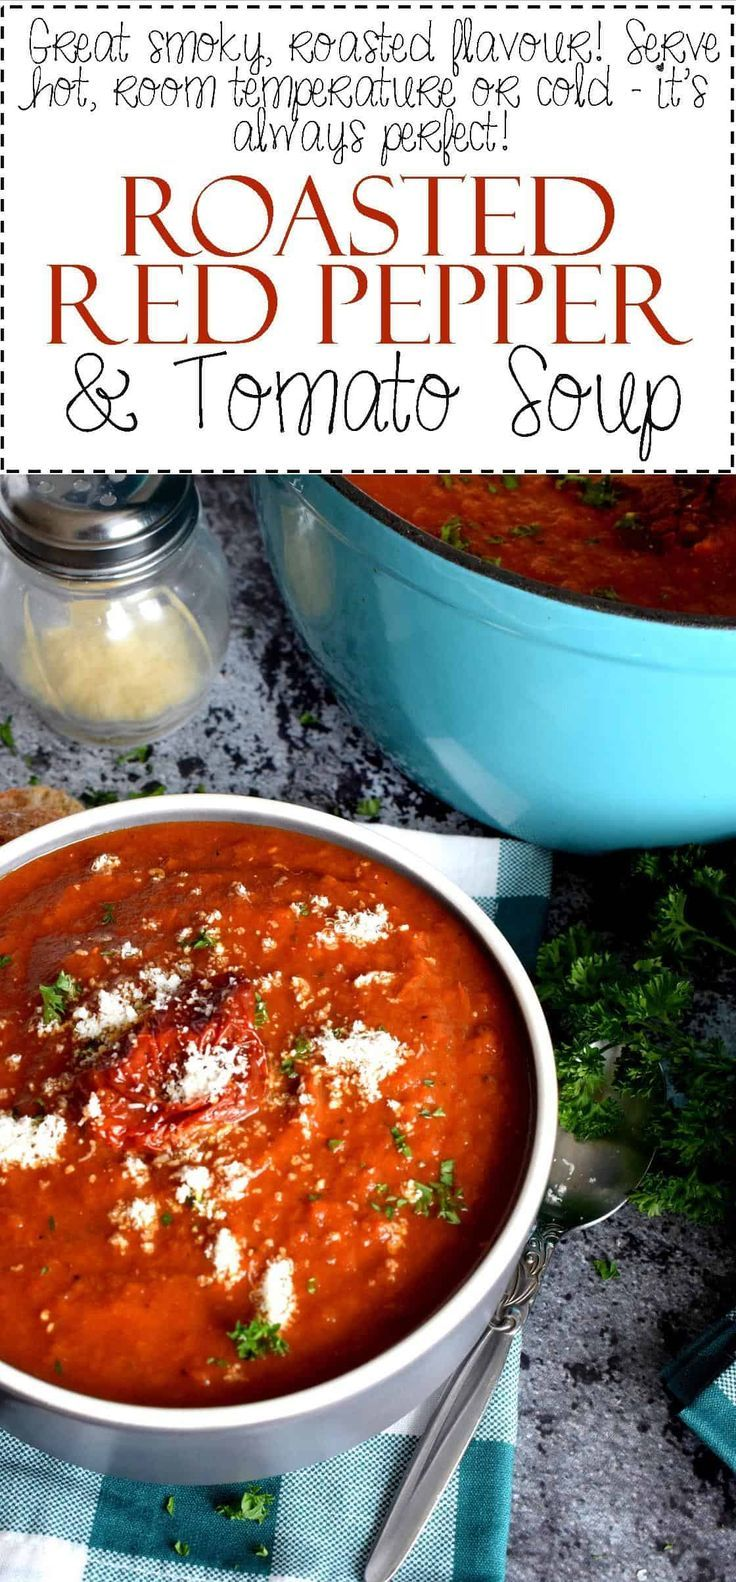 Roasted Red Pepper And Tomato Soup In 2020 Stuffed Peppers Tomato Soup Recipes Tomato Red Pepper Soup